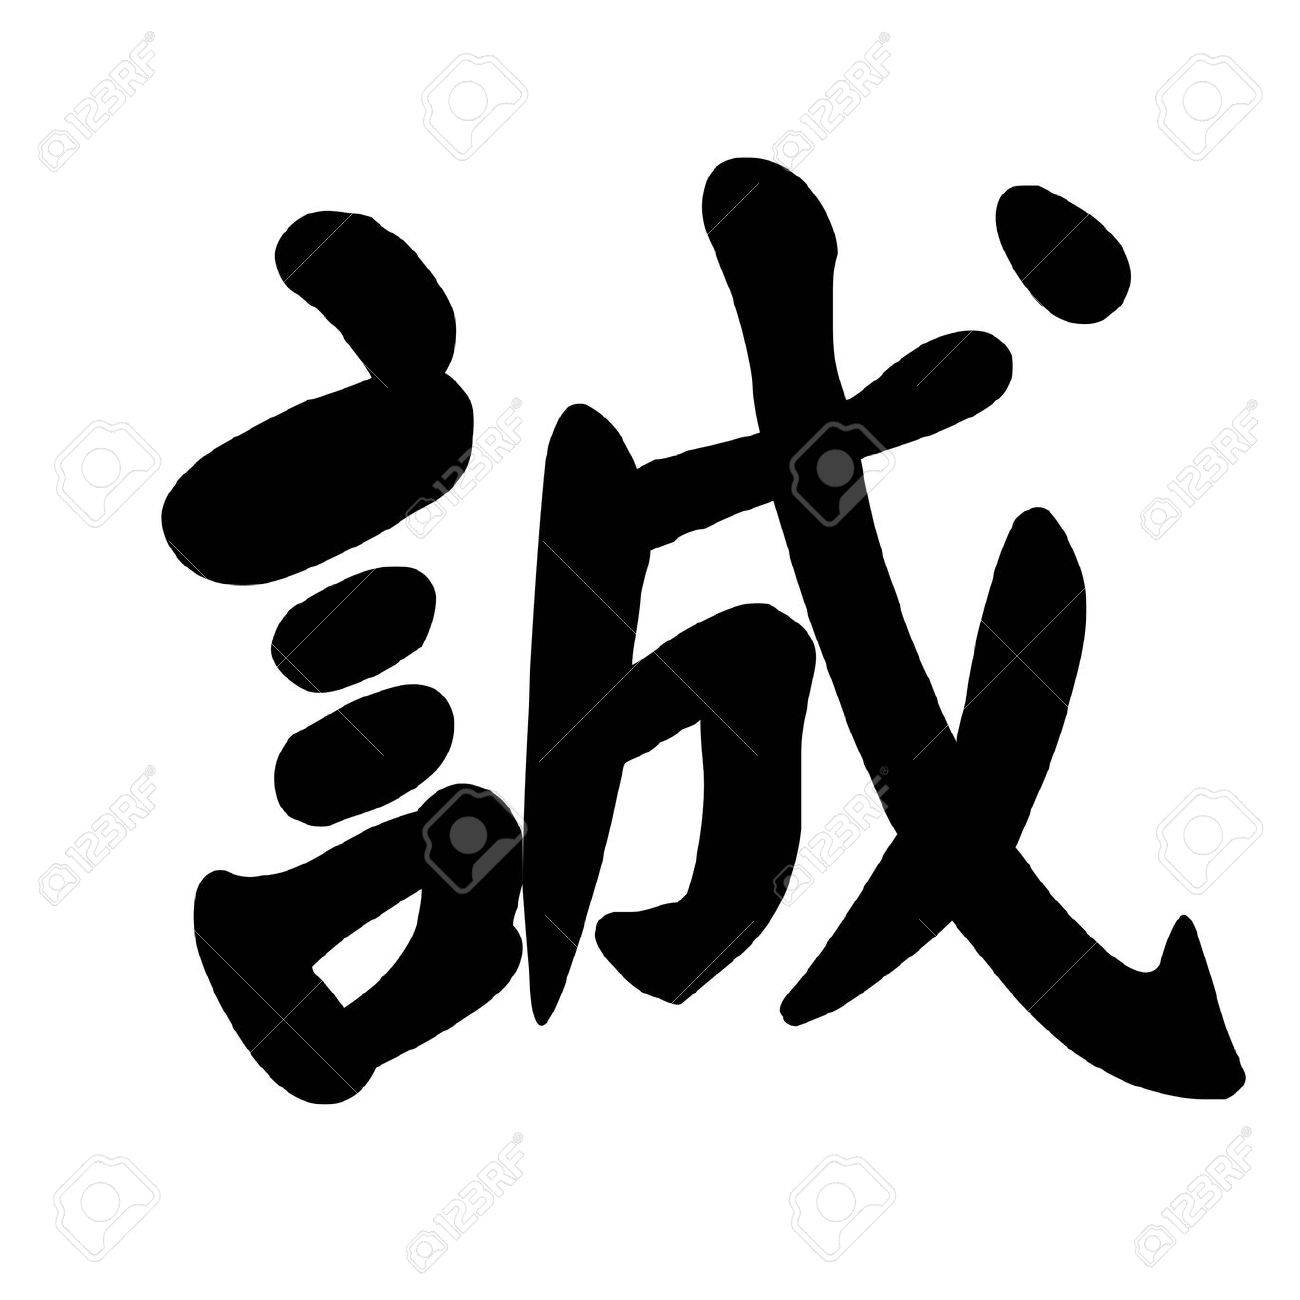 Chinese calligraphy character sincerity stock photo picture and chinese calligraphy character sincerity stock photo 7678493 biocorpaavc